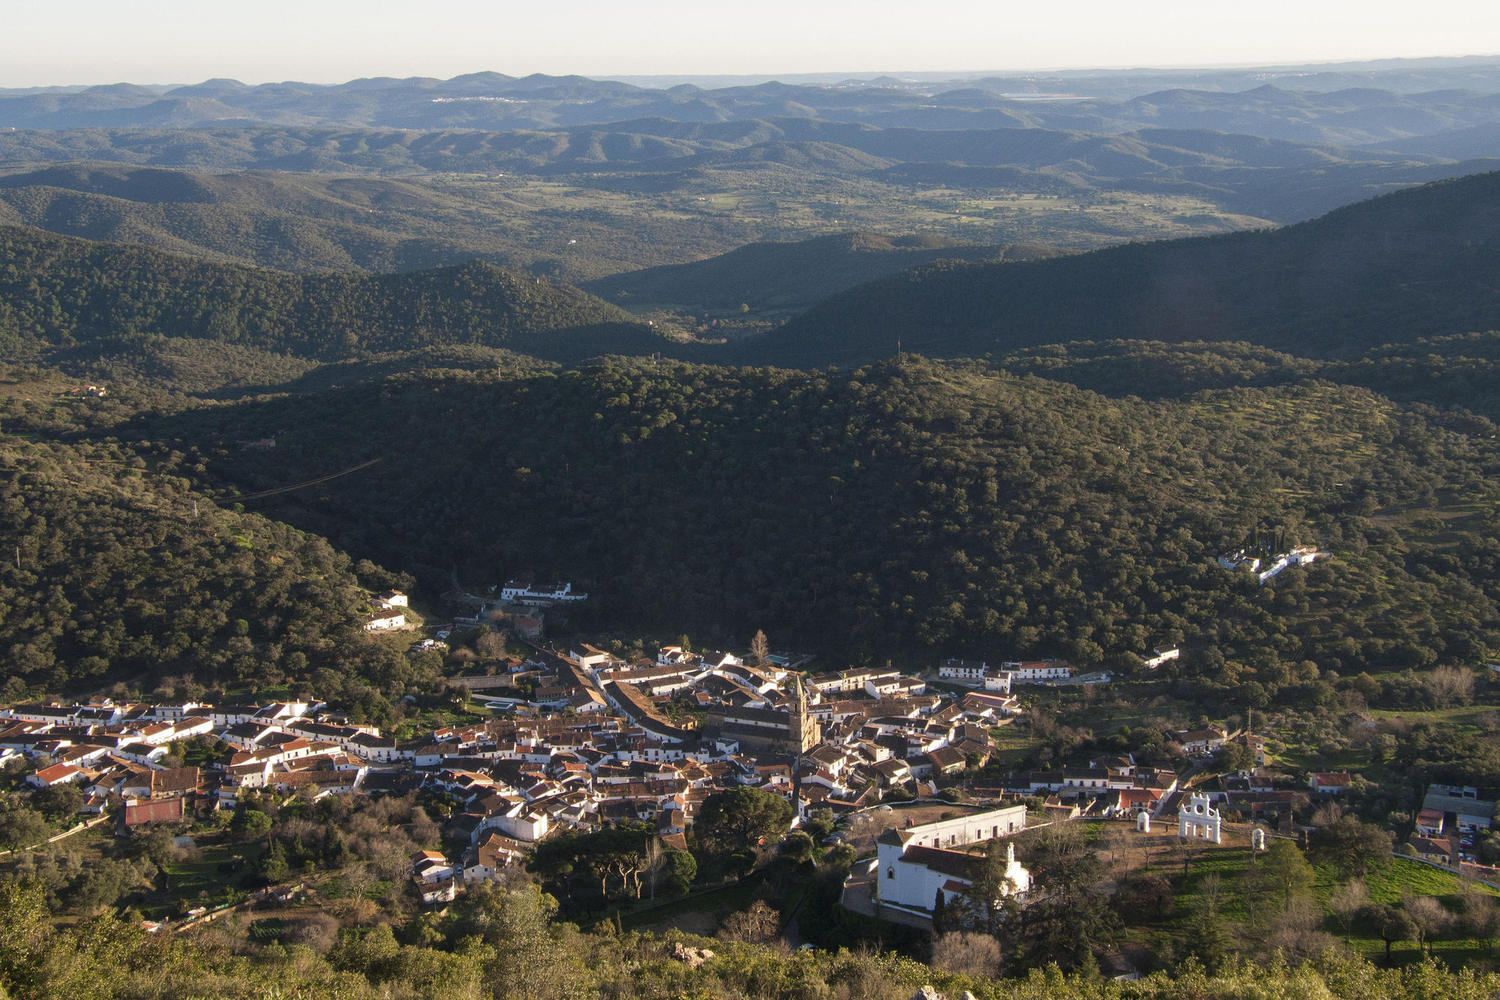 High views over Alajar from the top of the Arias Montano hill